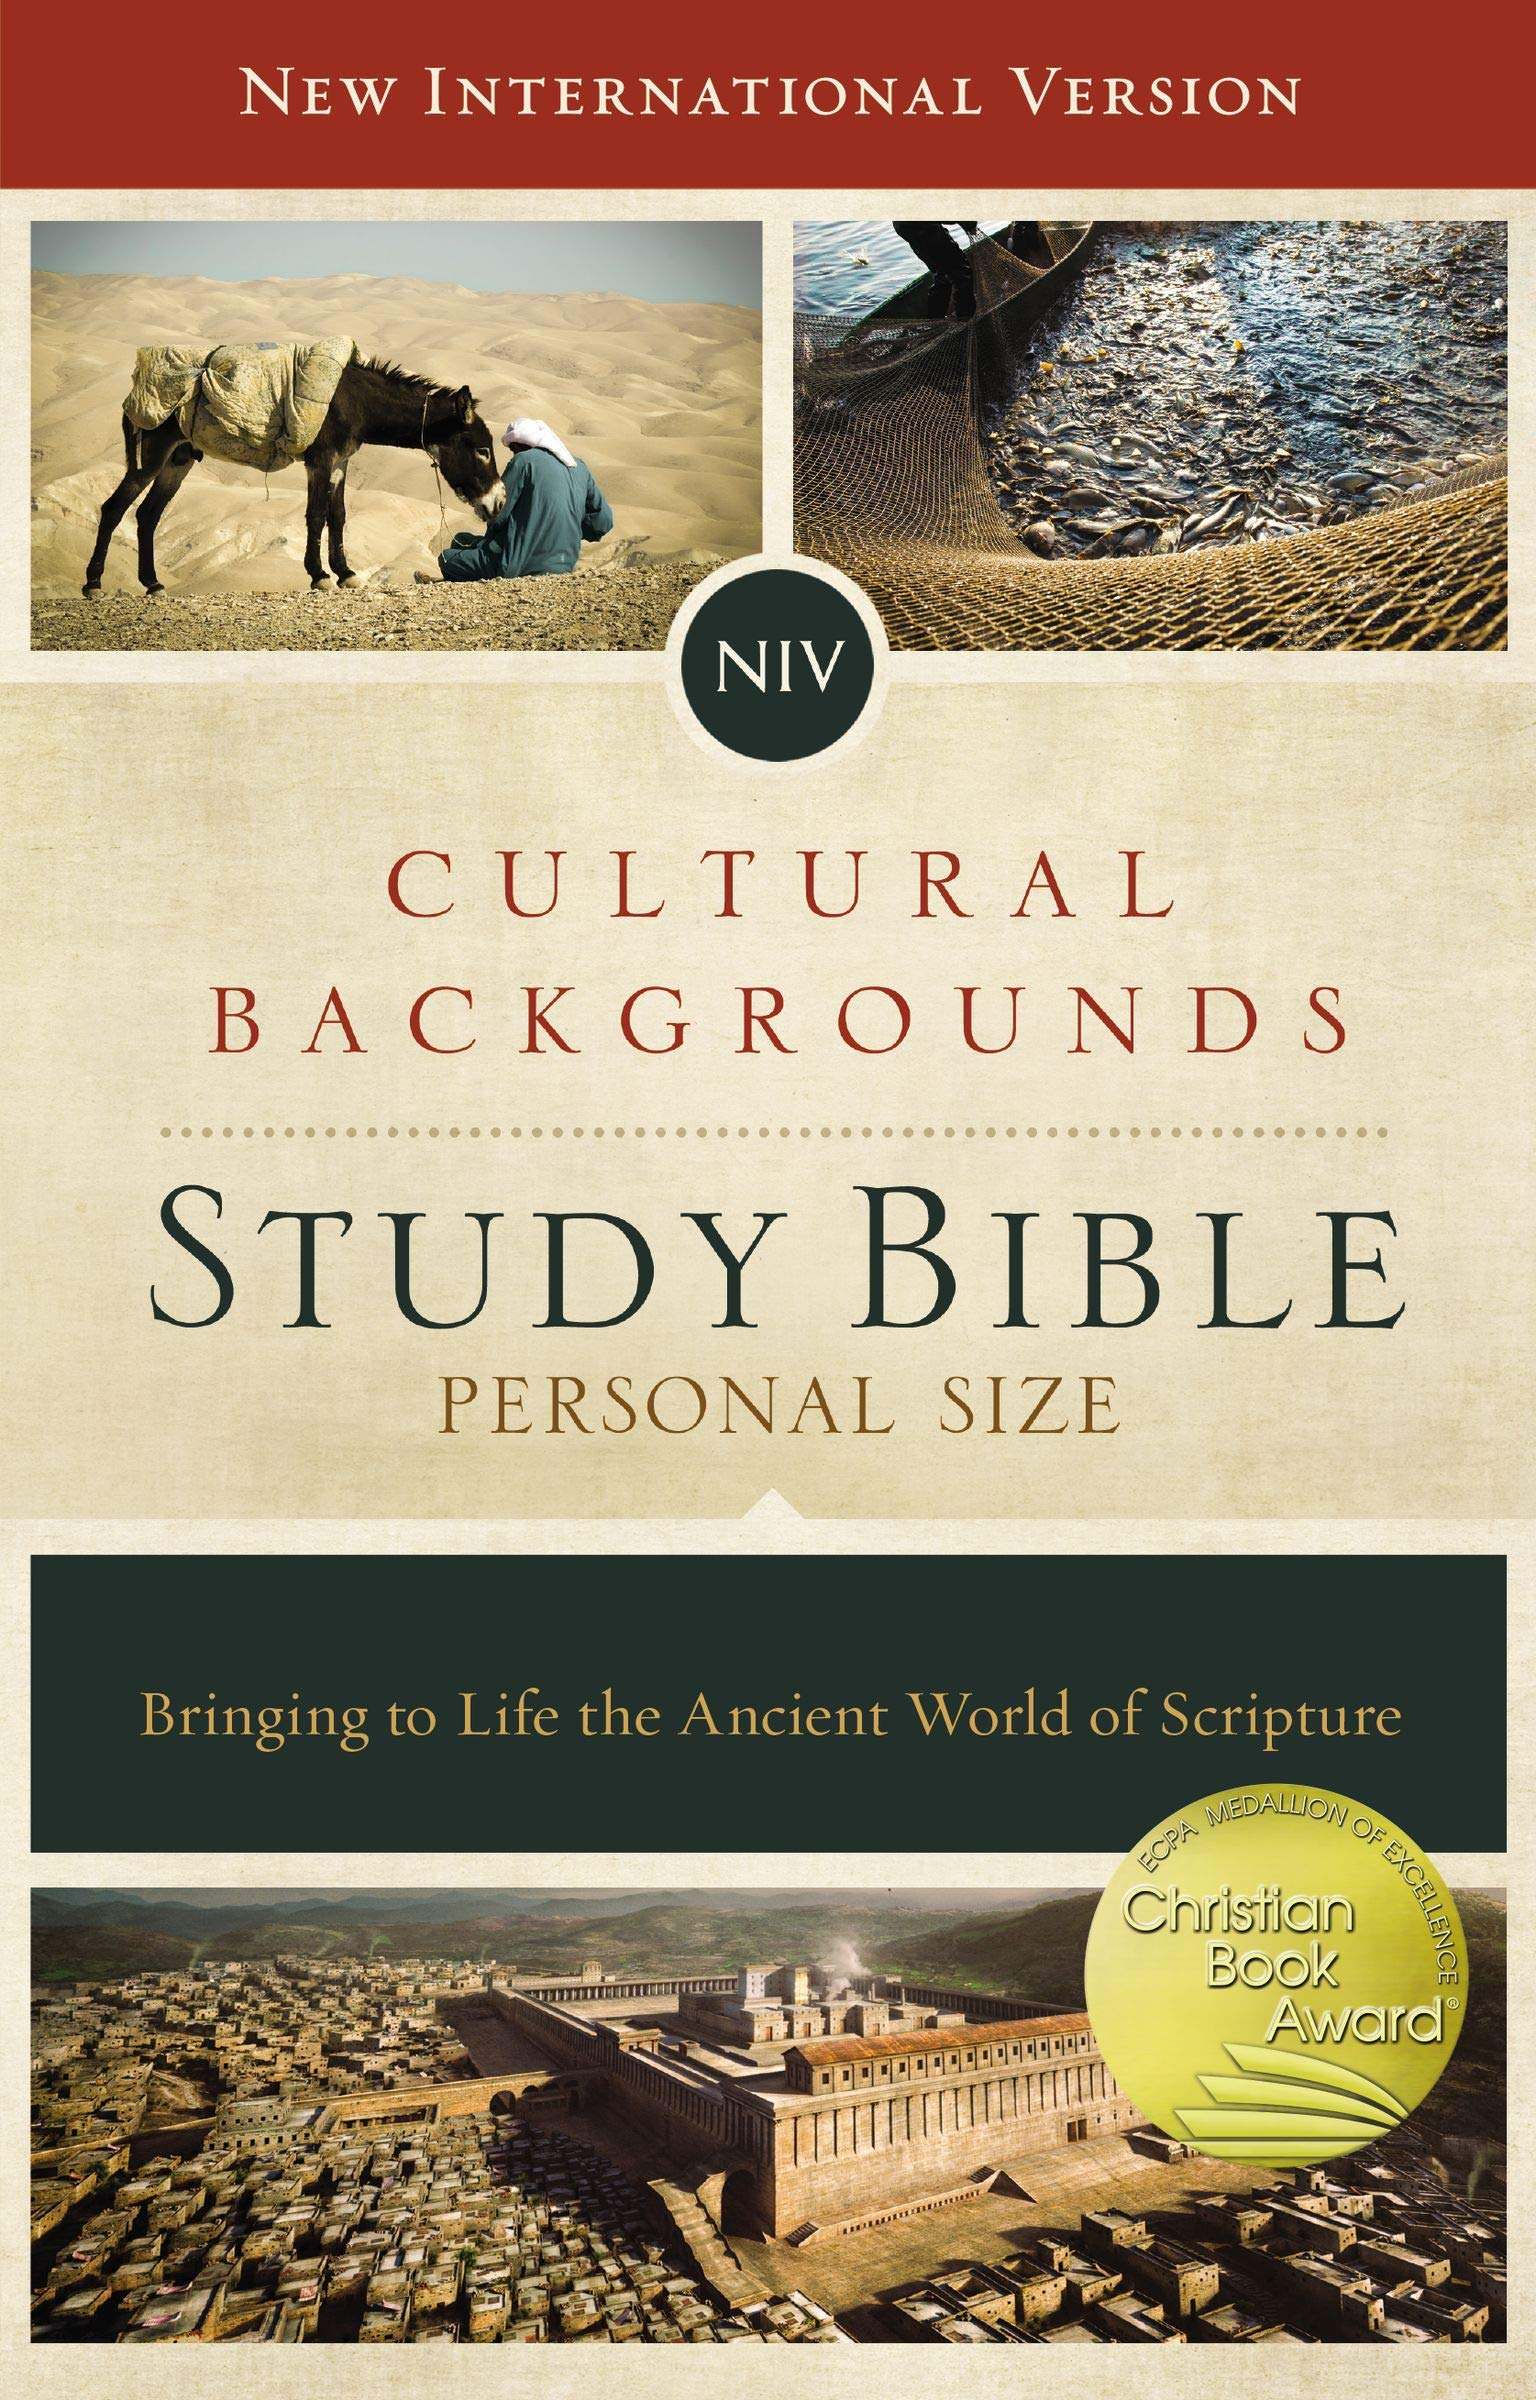 NIV Cultural Backgrounds Study Bible Personal Size Hardcover 1536x2400